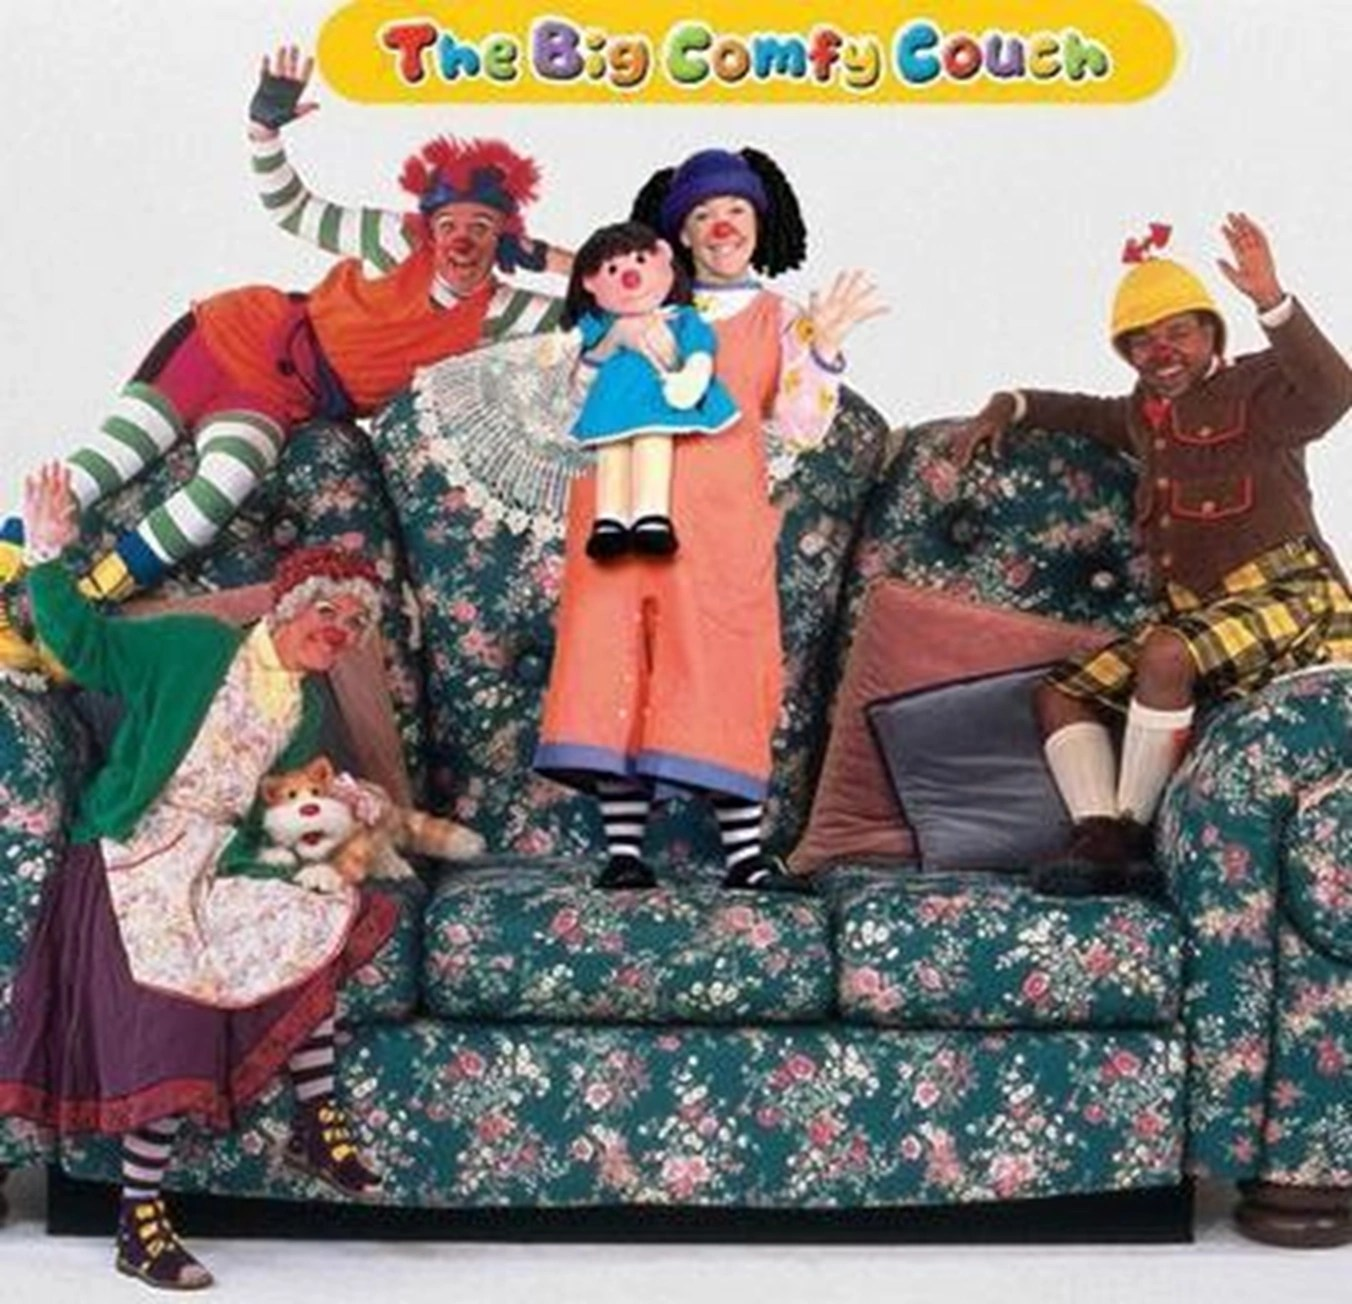 Big Couch Clown The Big Comfy Couch Jomaribryan S Version Custom Time